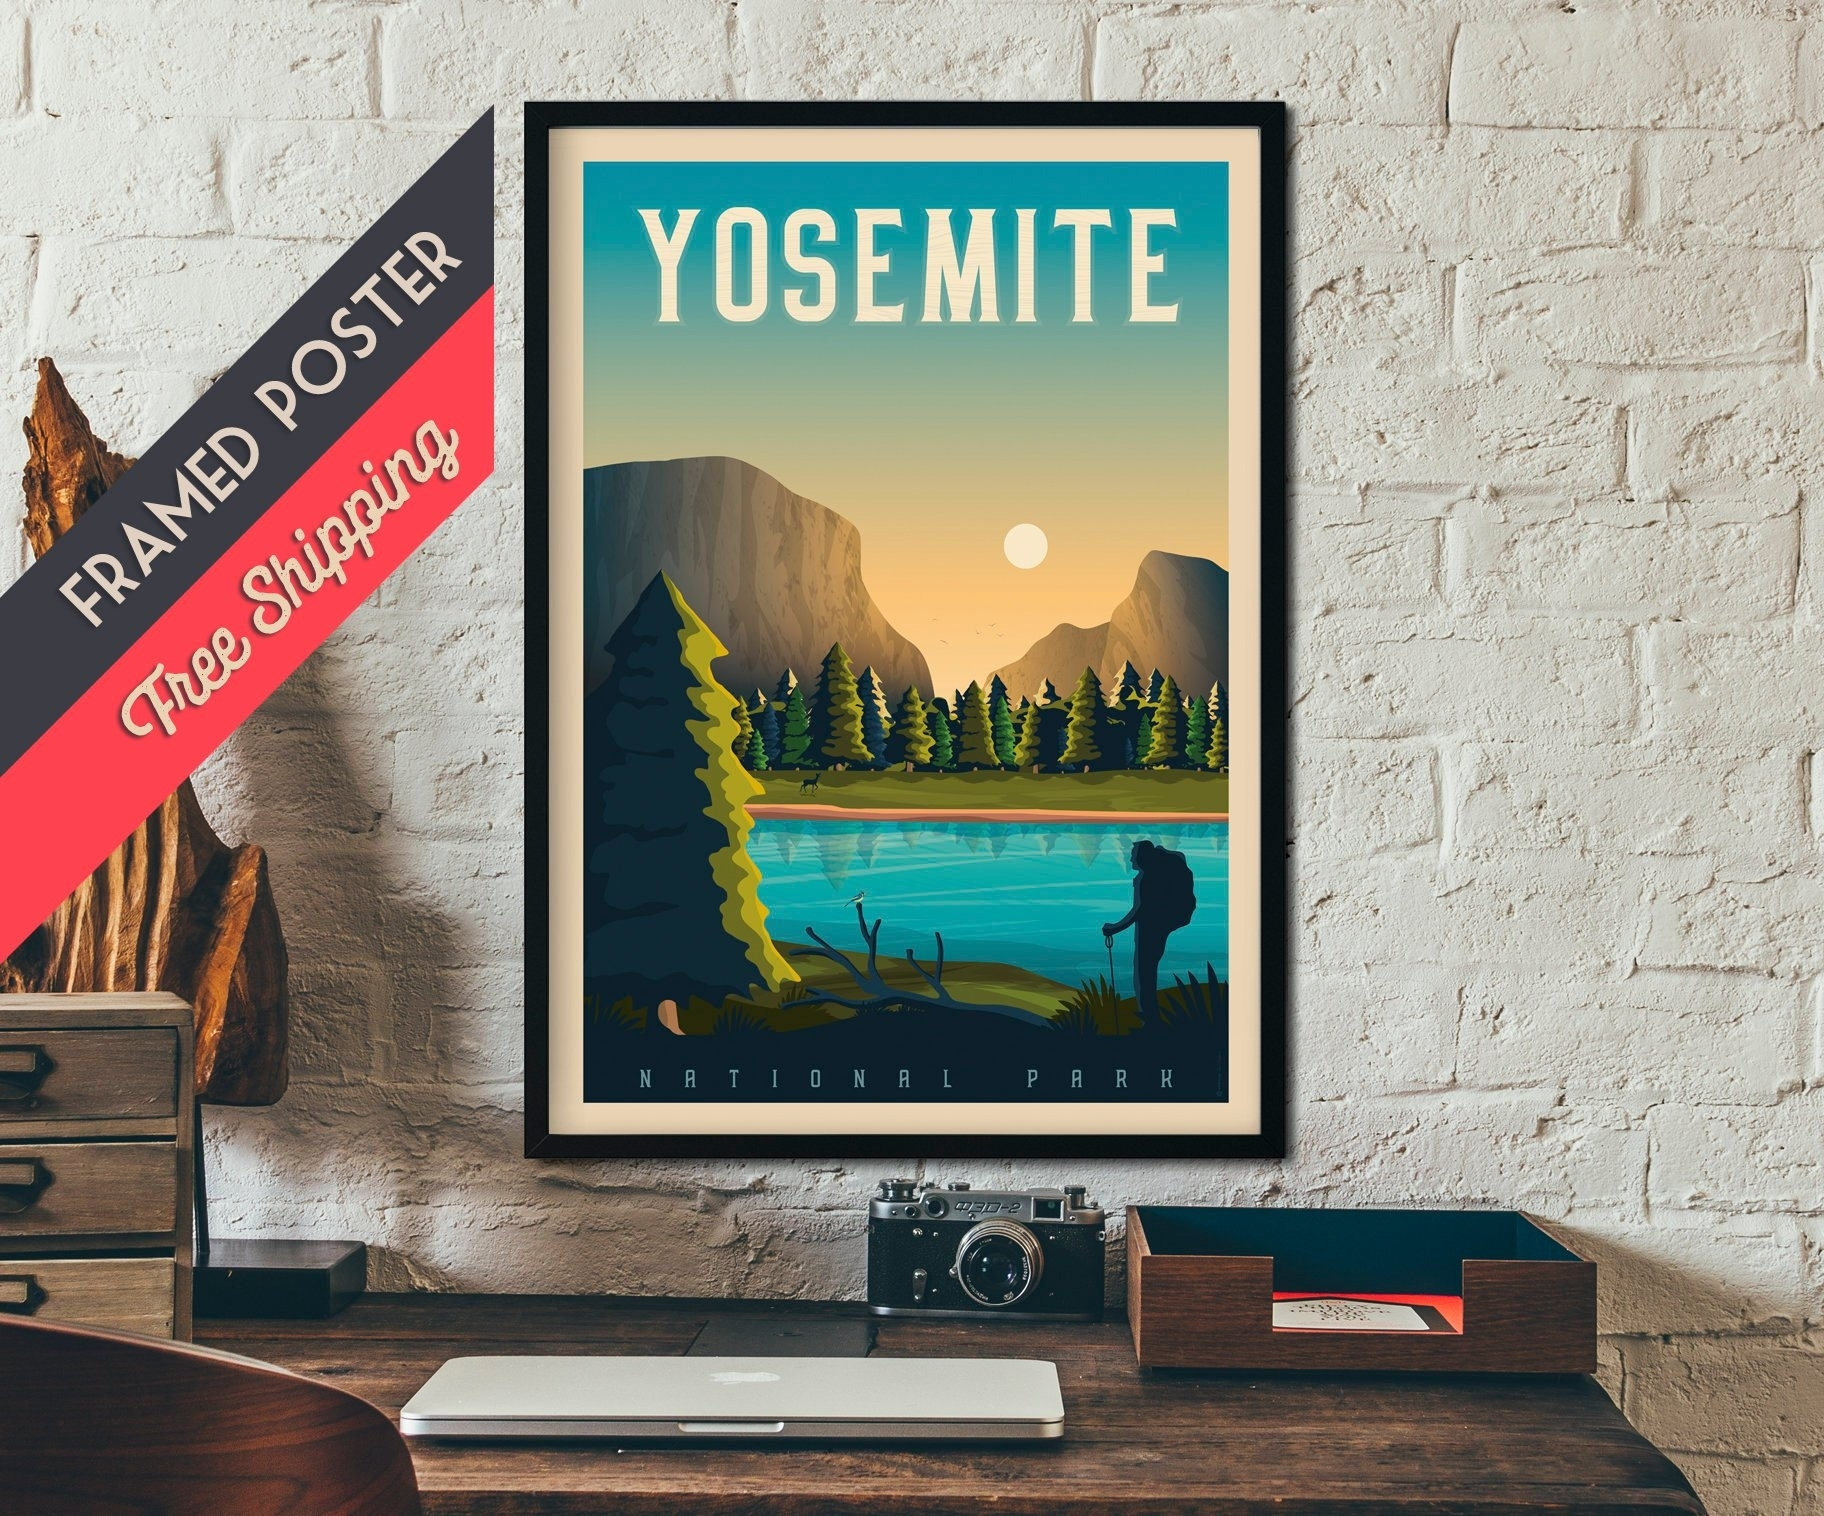 Yosemite National Park Print - California Travel Poster, Framed pertaining to California Wall Art (Image 20 of 20)